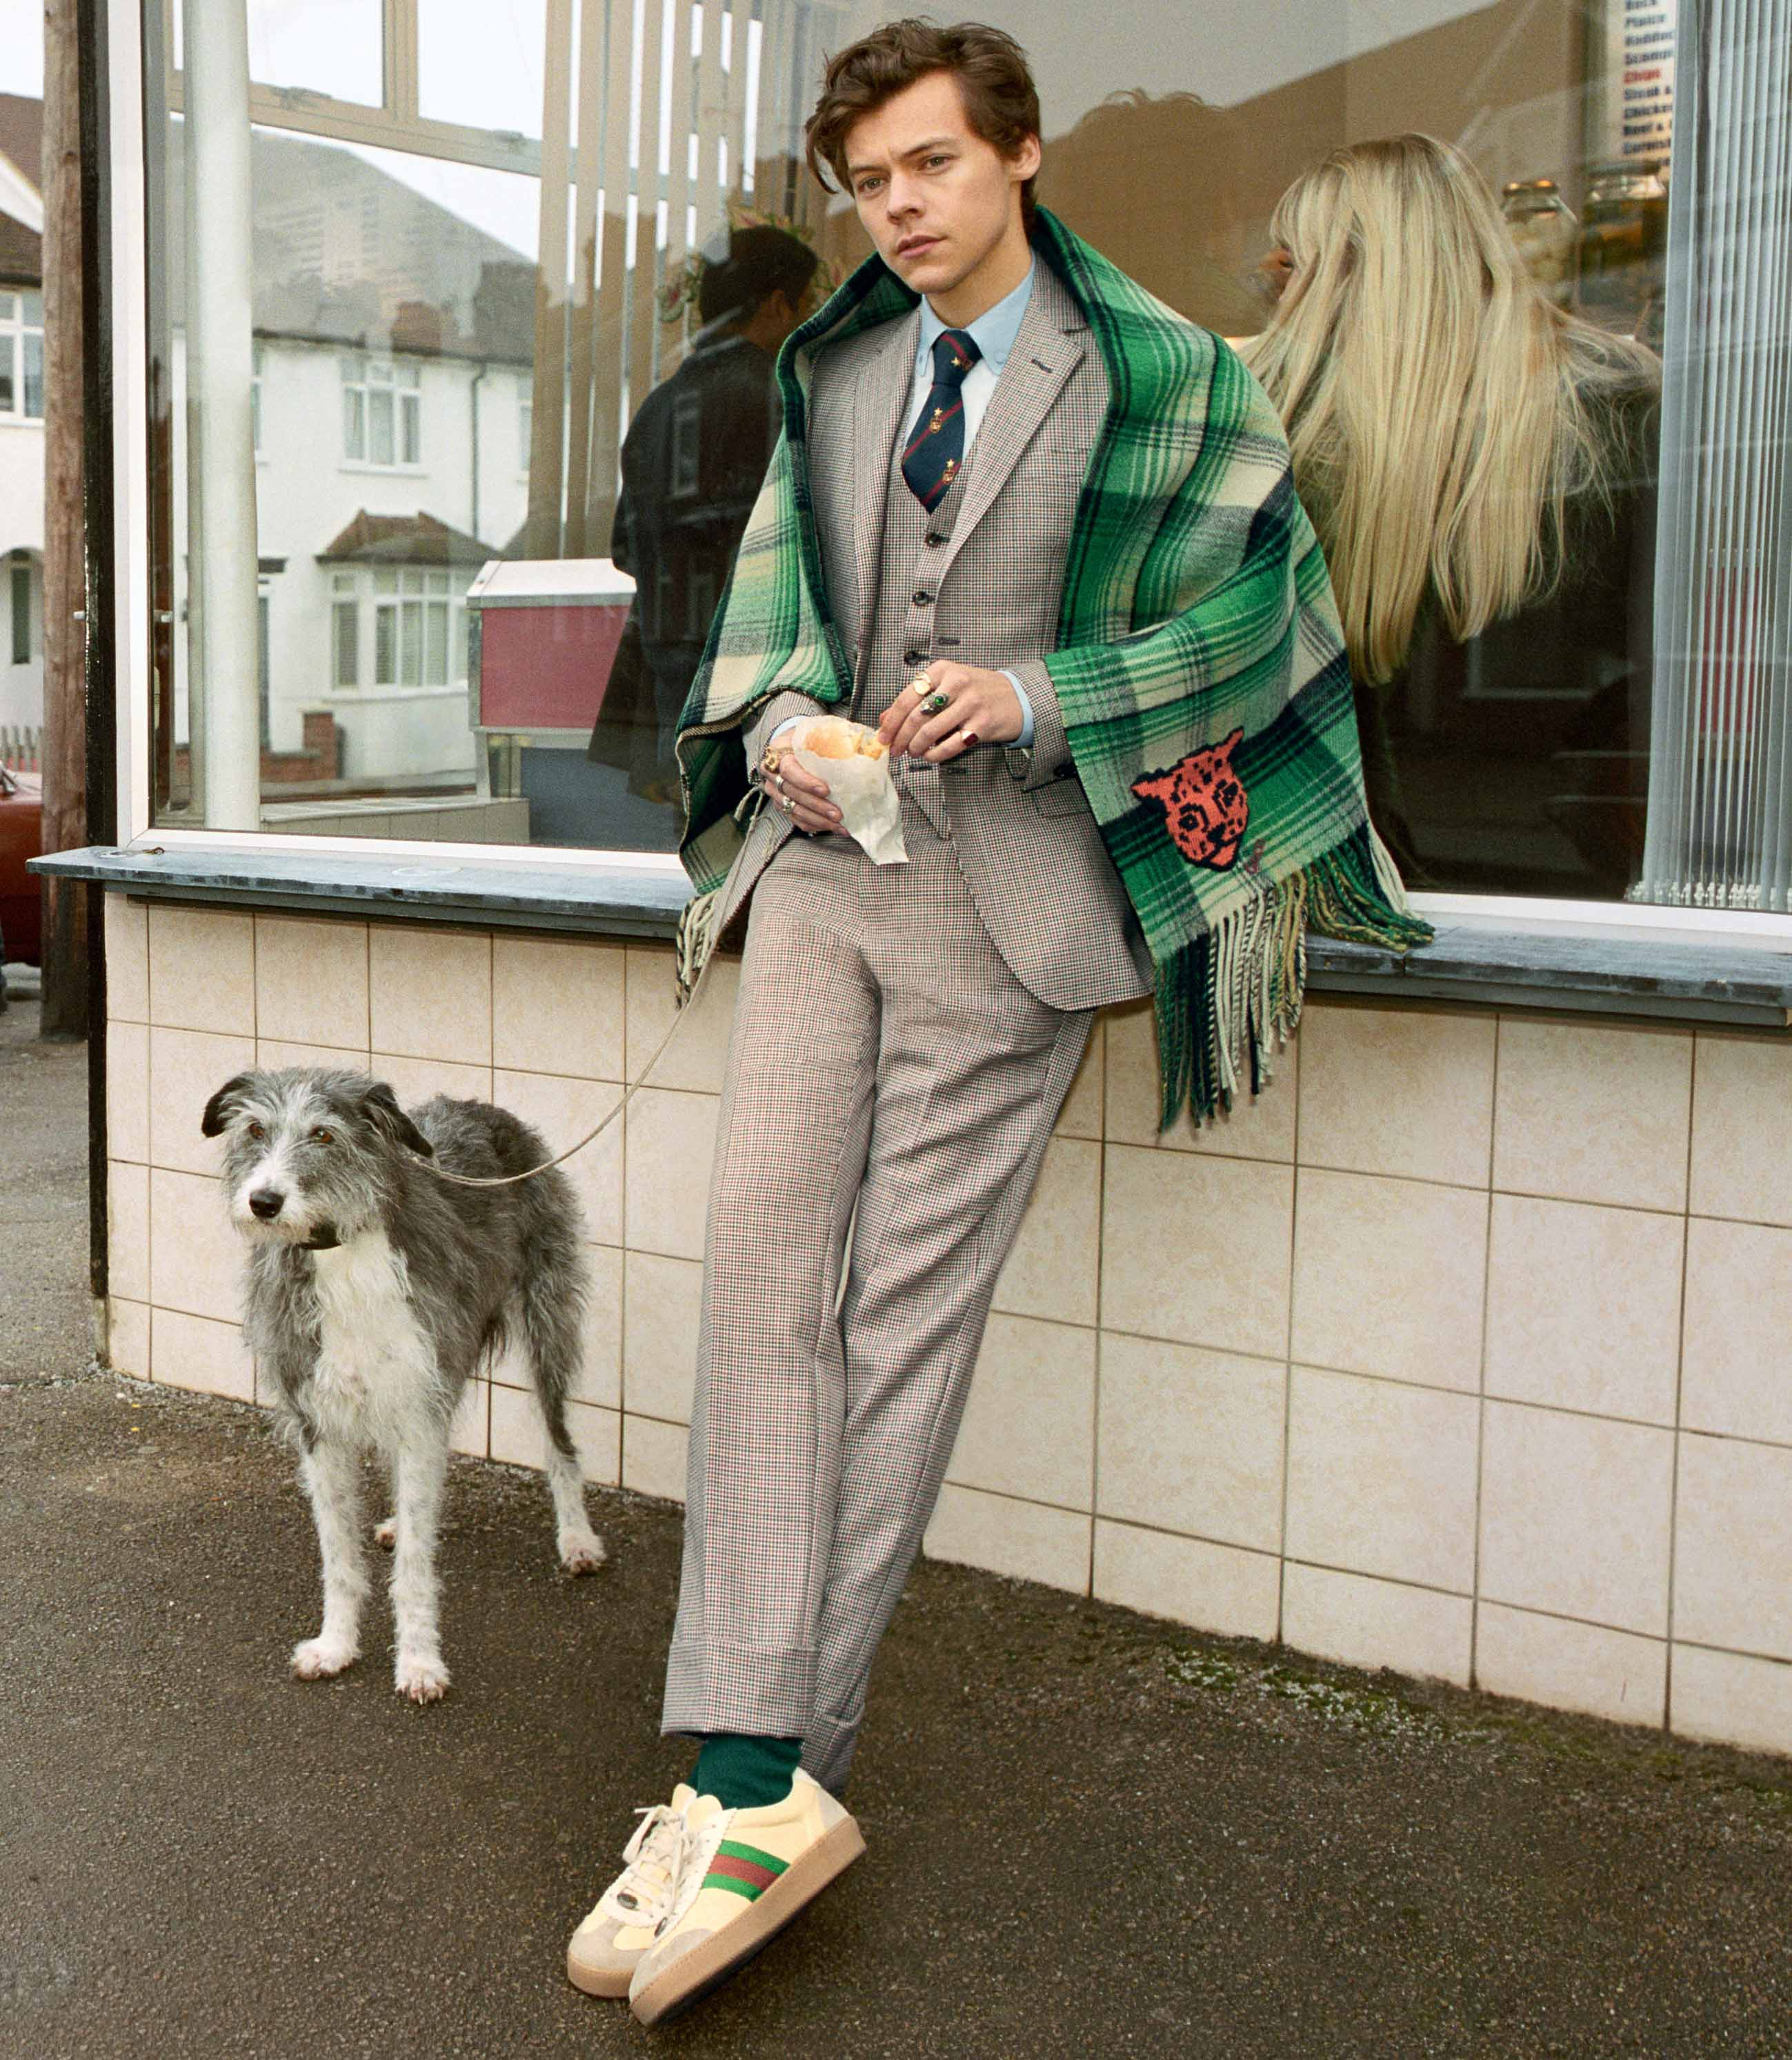 Harry Styles - Gucci Men's Tailoring automne-hiver 2018-2019 - Photo : Glen Luchford